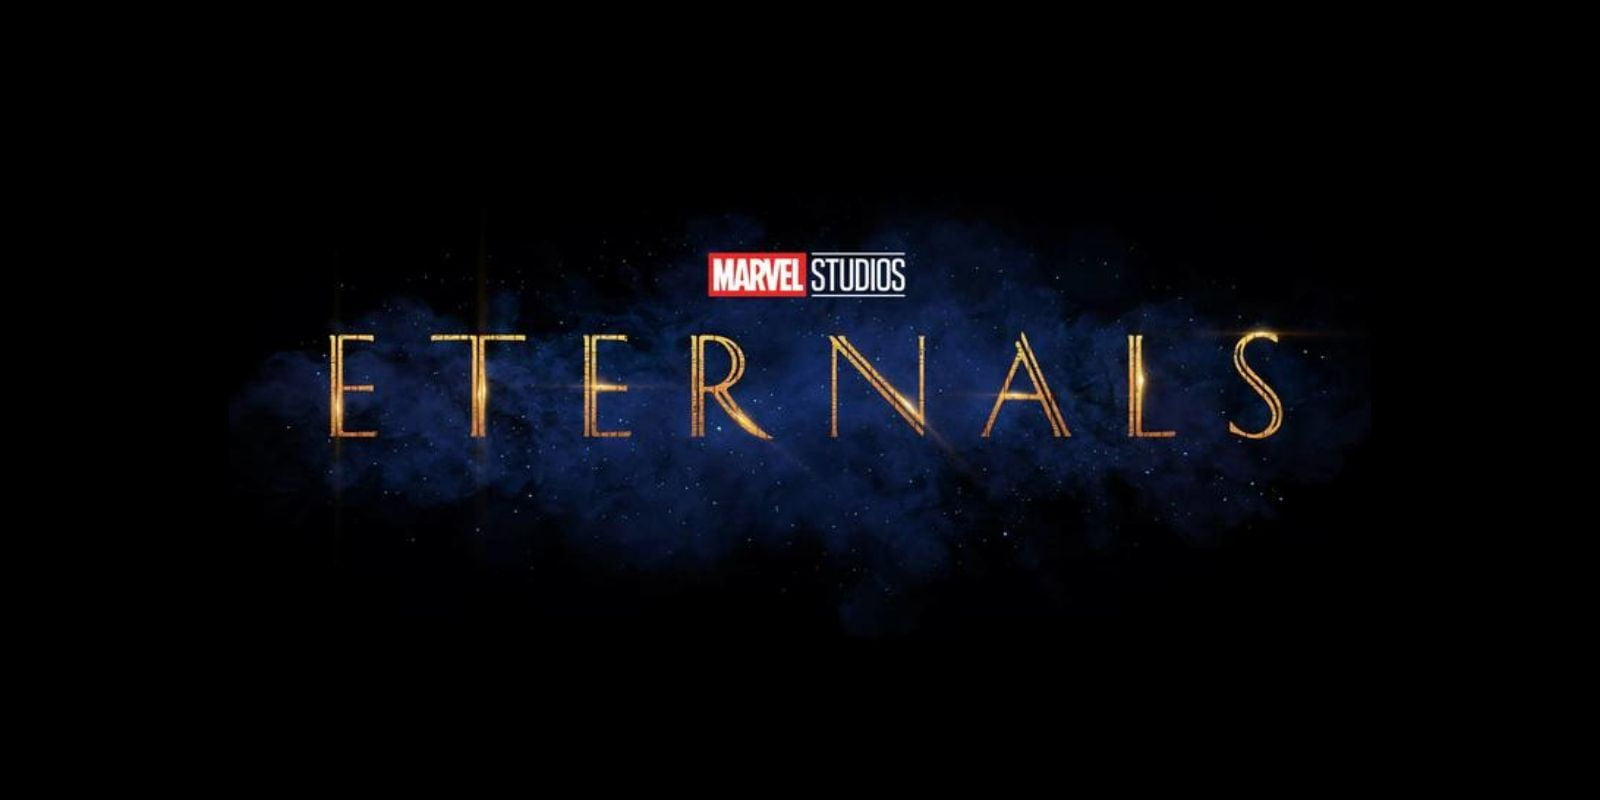 The Eternals movie logo from Marvel Phase 4